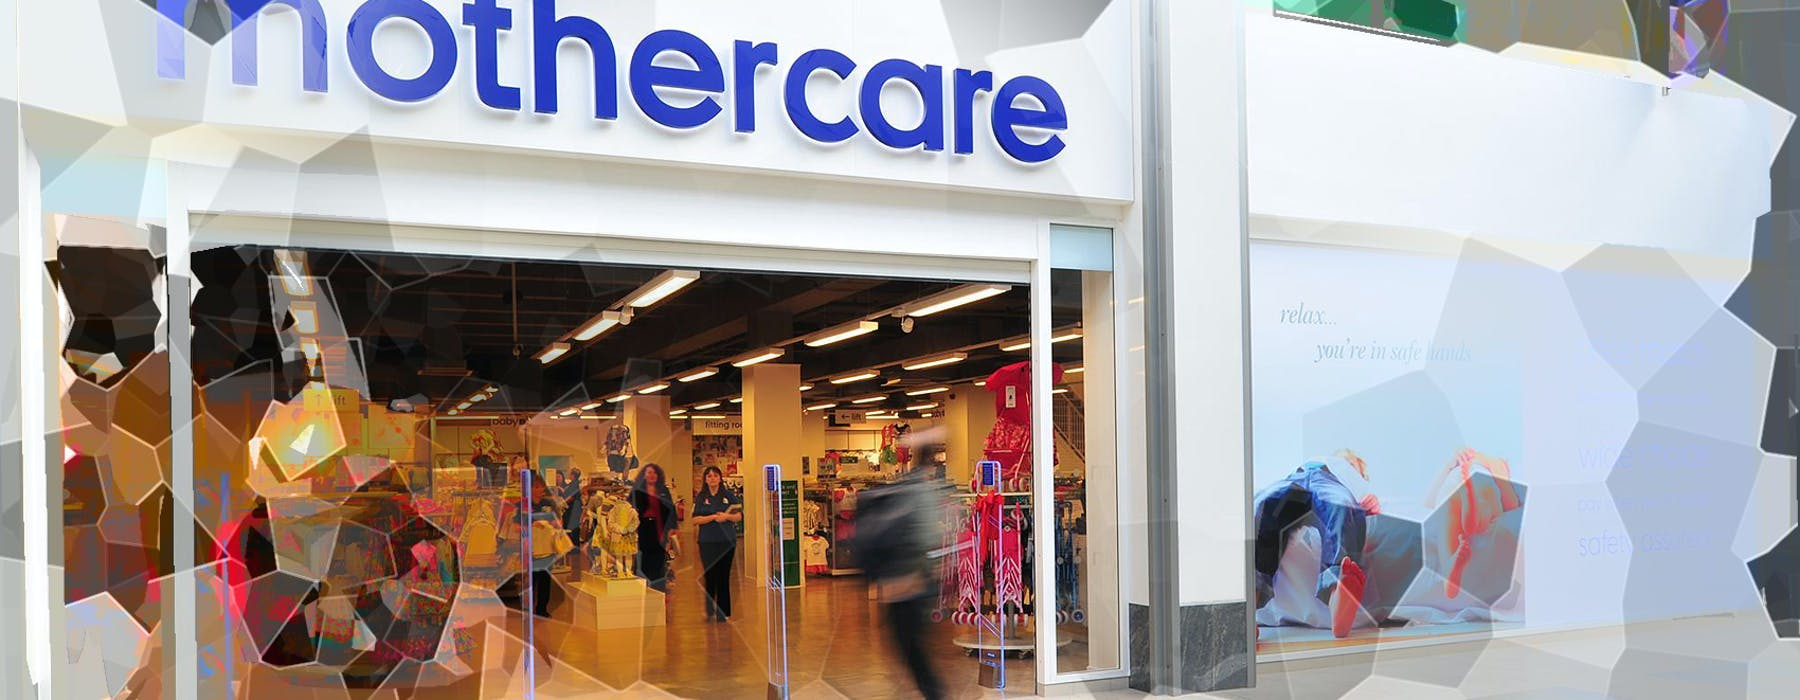 Mothercare: Where does it go from here?